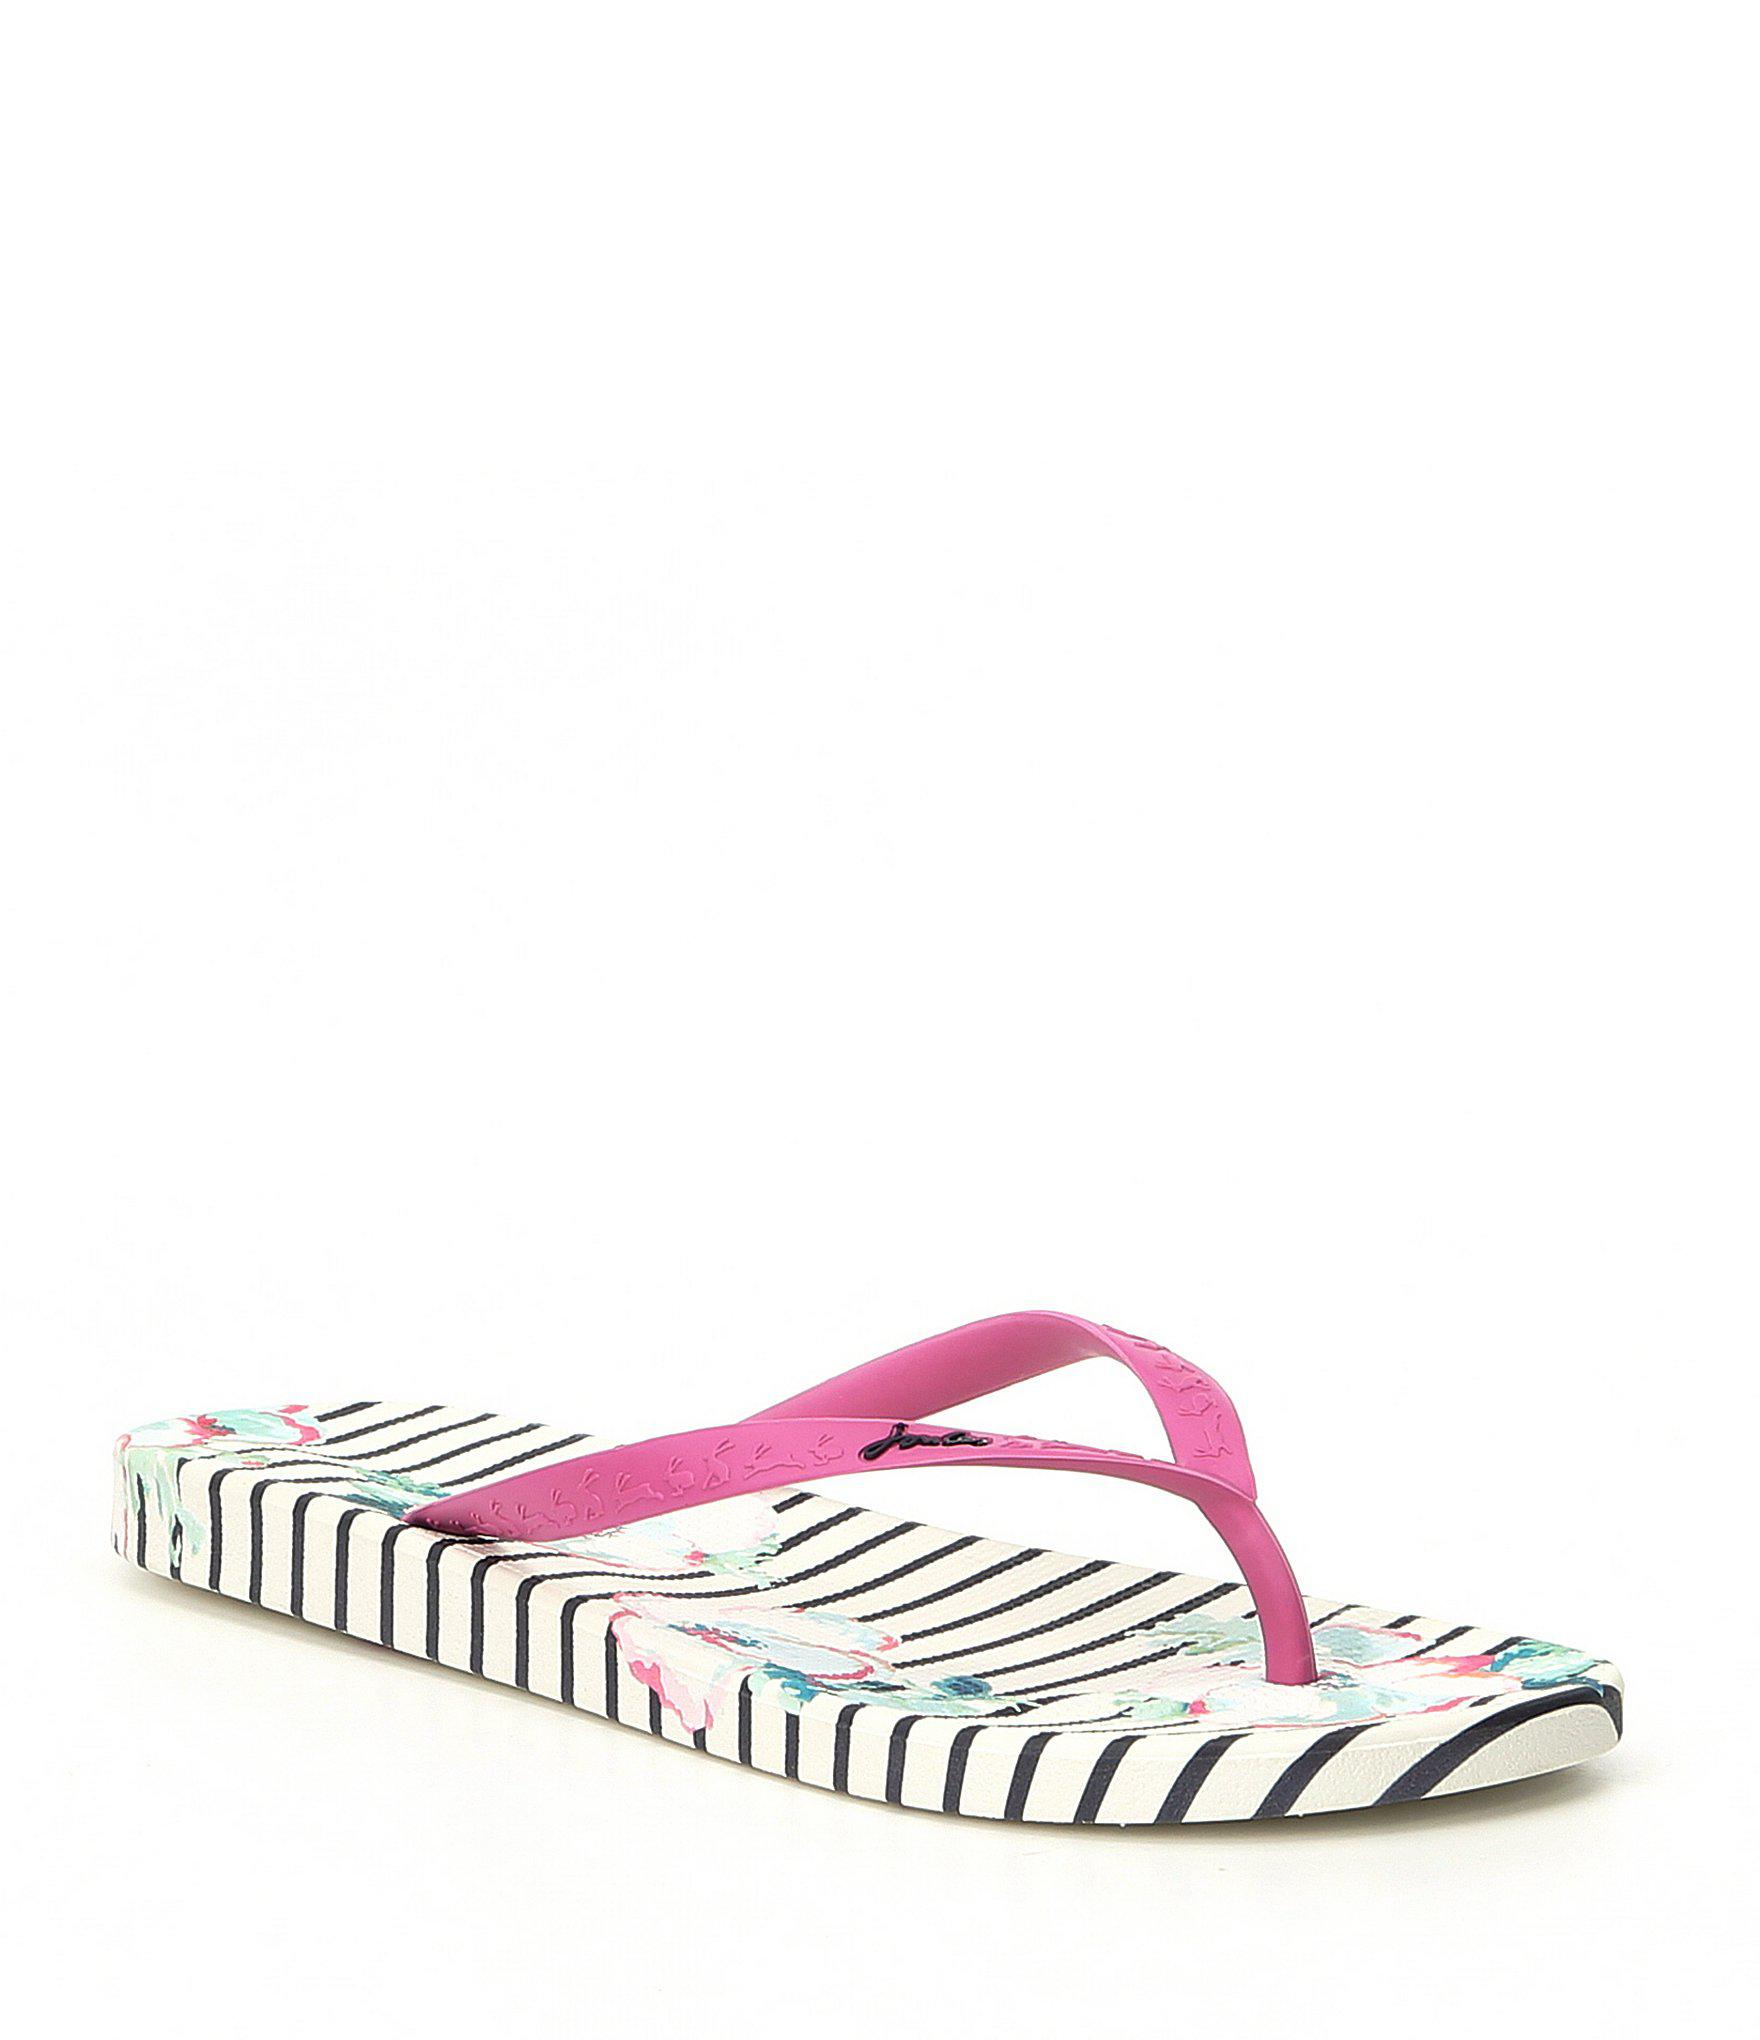 8c608912fbed4 Lyst - Joules Printed Floral Striped Flip Flop Sandals